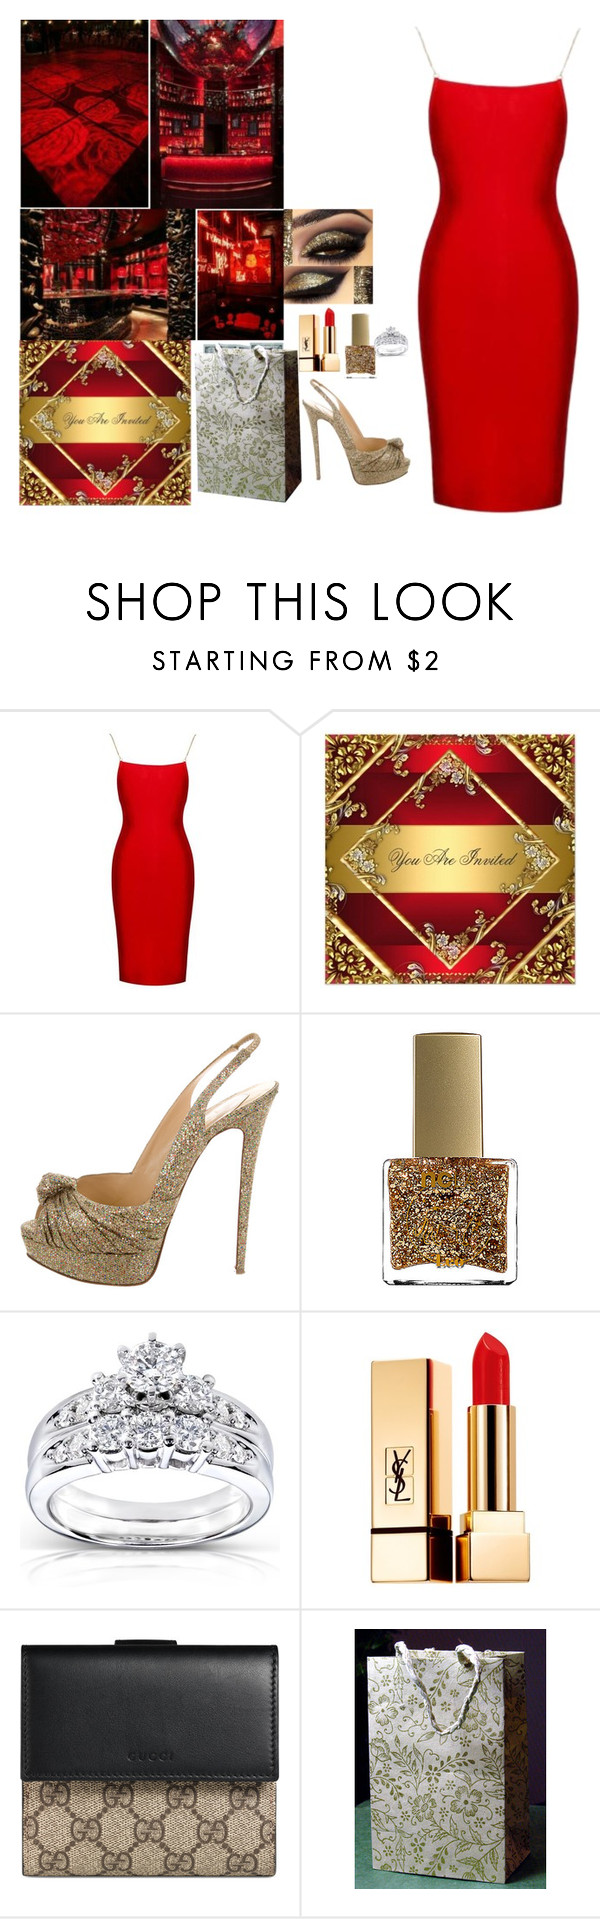 """""""Ariella's Bachelorette Party"""" by xxxladiidxxx ❤ liked on Polyvore featuring Christian Louboutin, ncLA, Kobelli, Yves Saint Laurent and Gucci"""